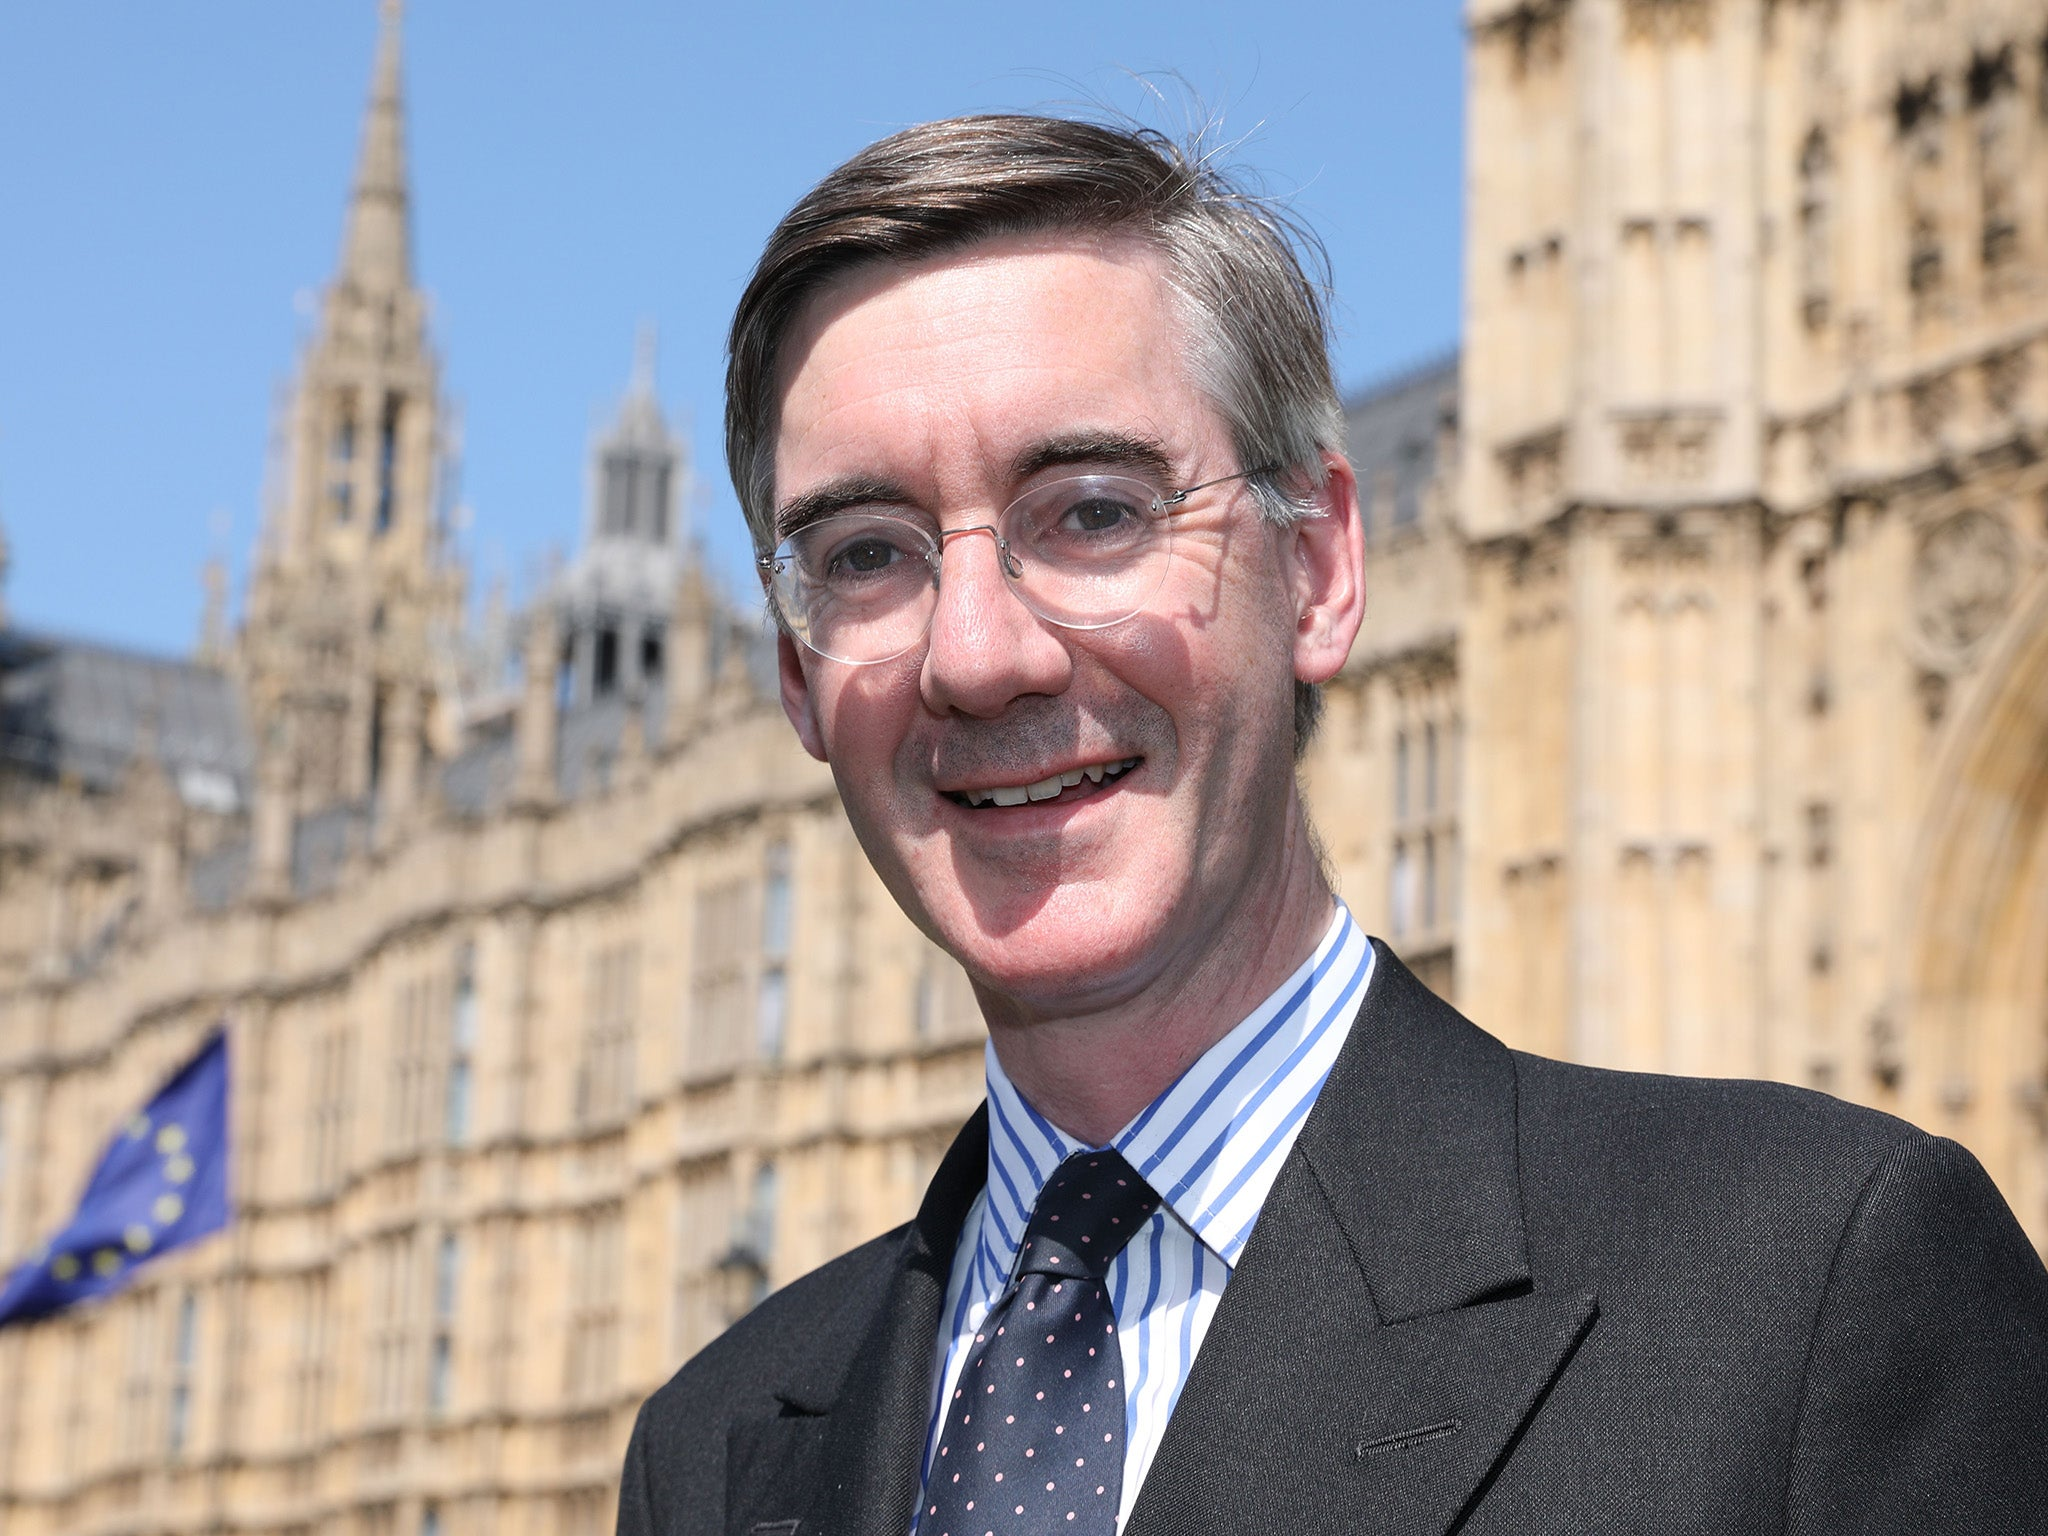 In: Jacob Rees-Mogg